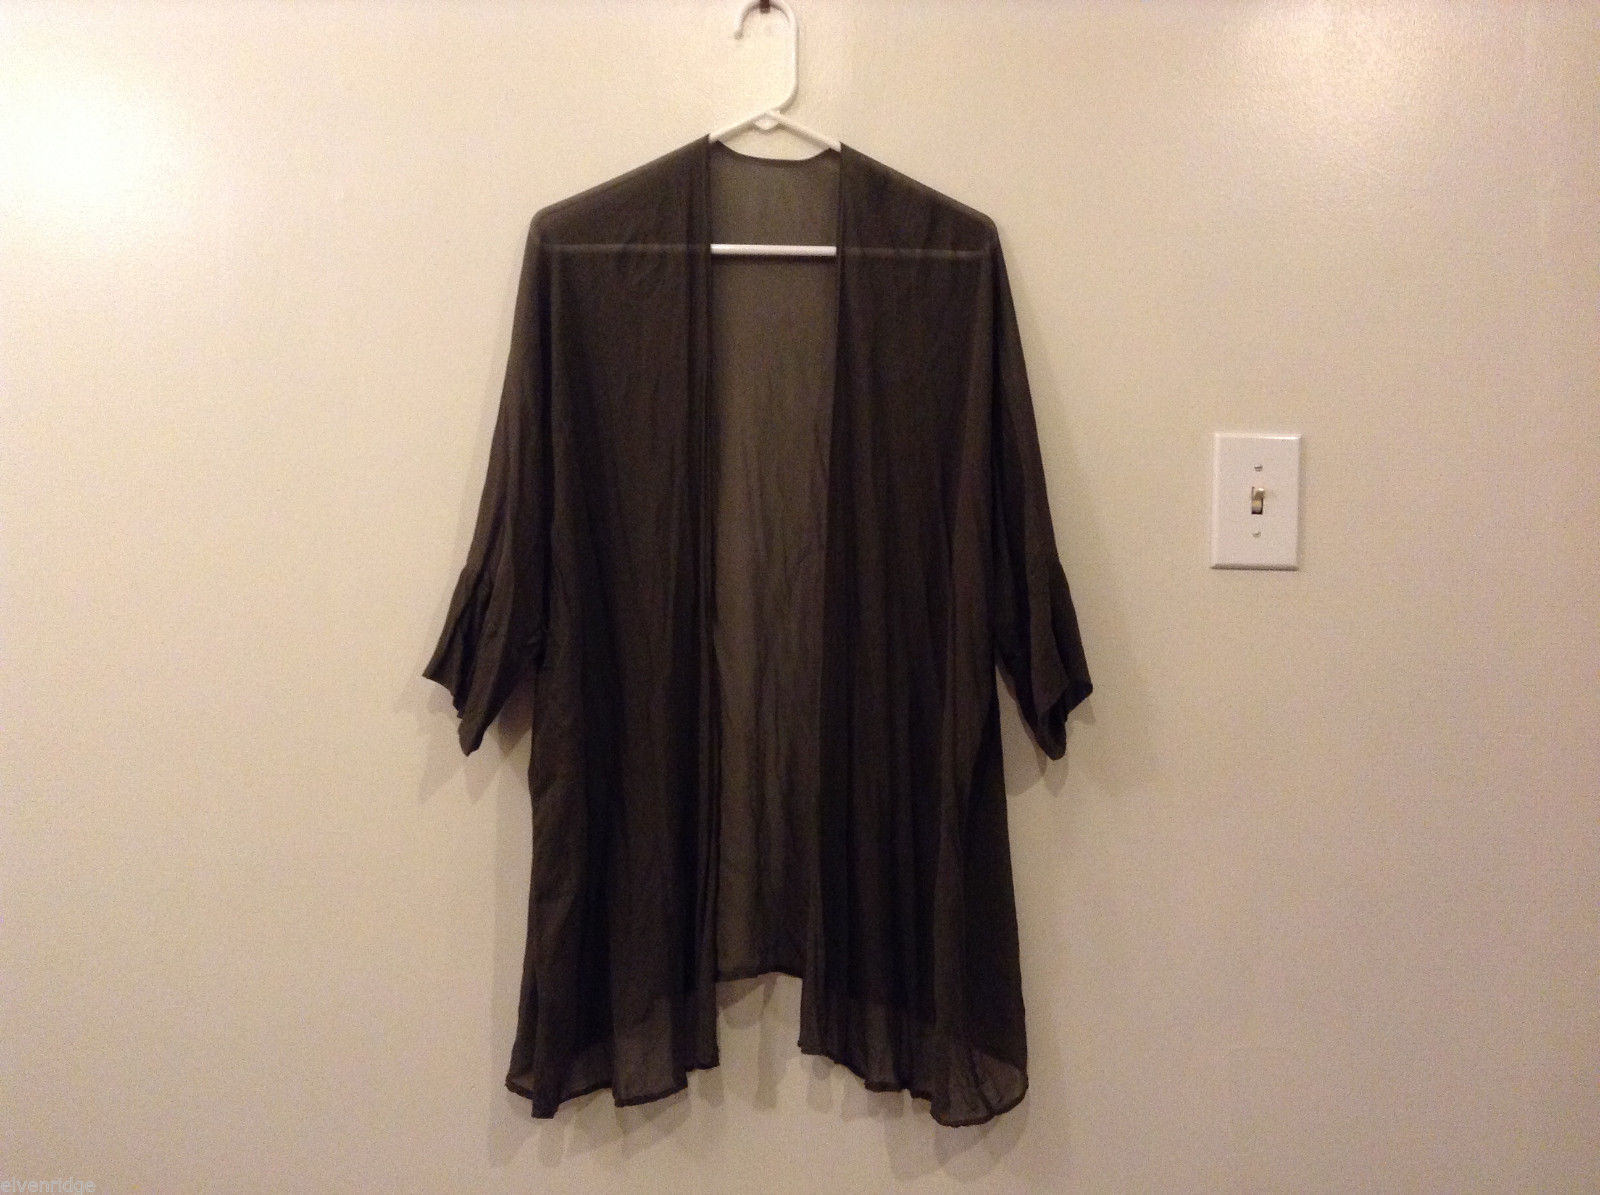 Ladies Homemade (no brand name) Dark Olive Green Cover Up Blouse, Size XL NO tag